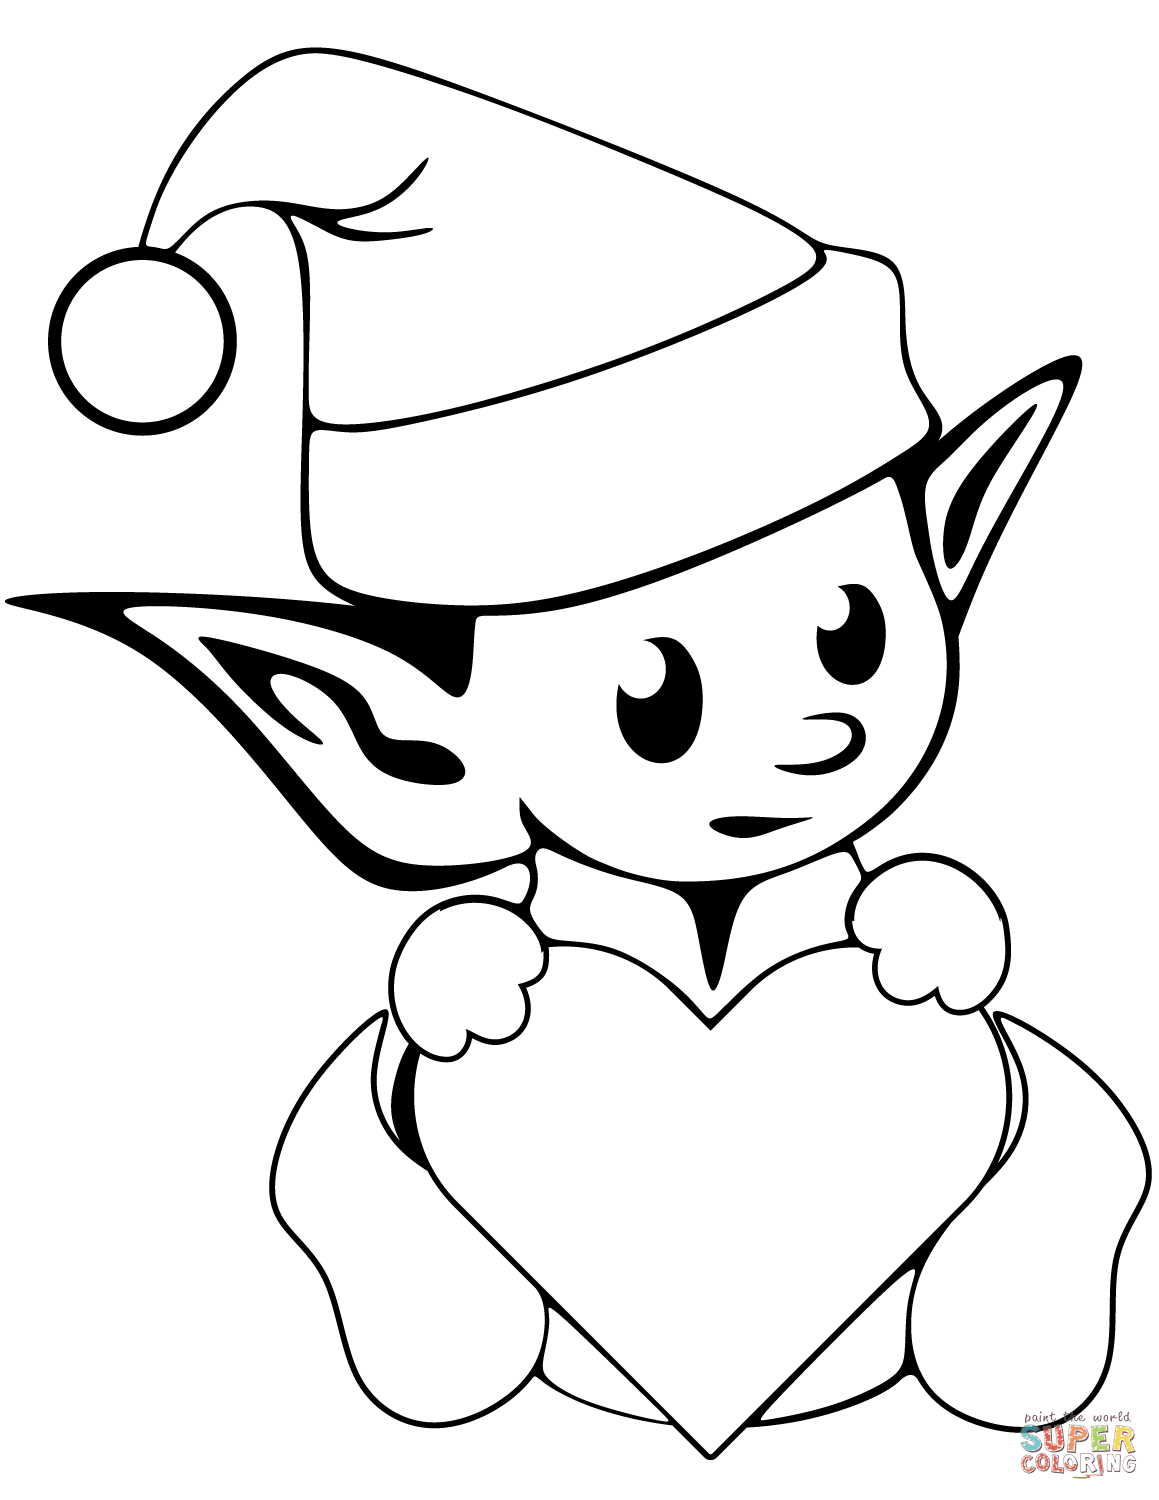 Christmas Elves Coloring Pages To Print With Free